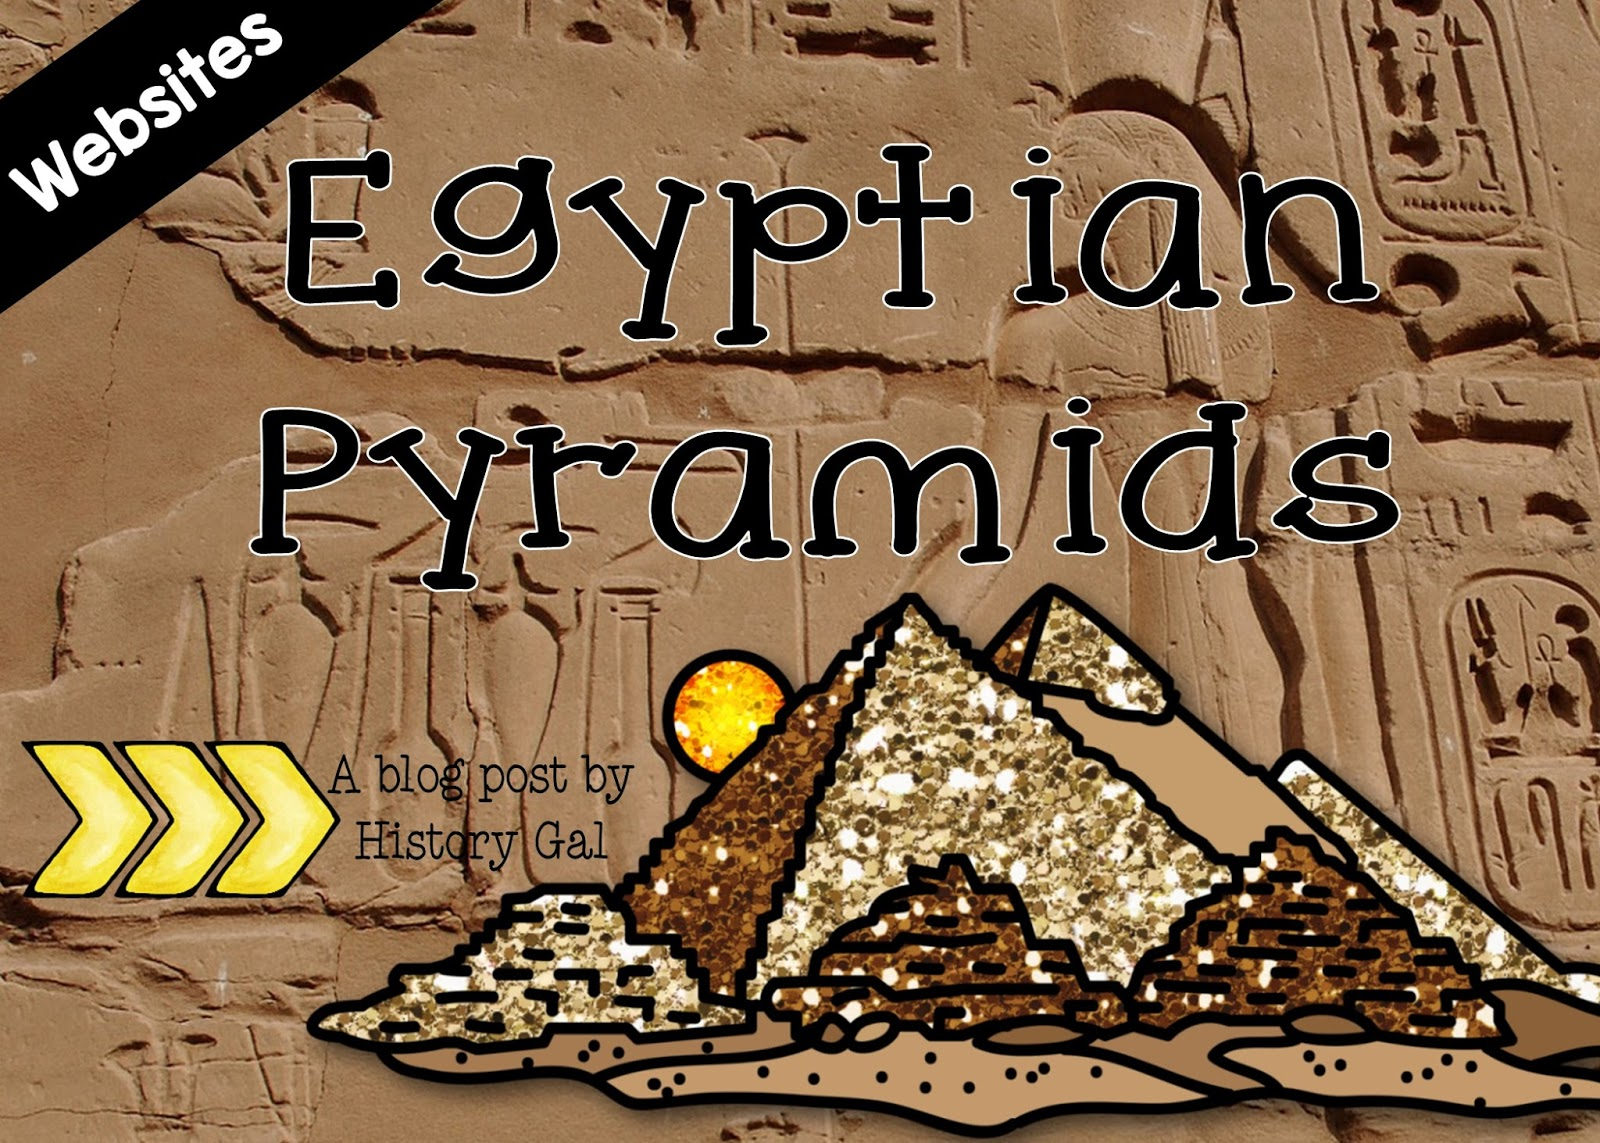 Websites to Use When Teaching About Egyptian Pyramids by History Gal